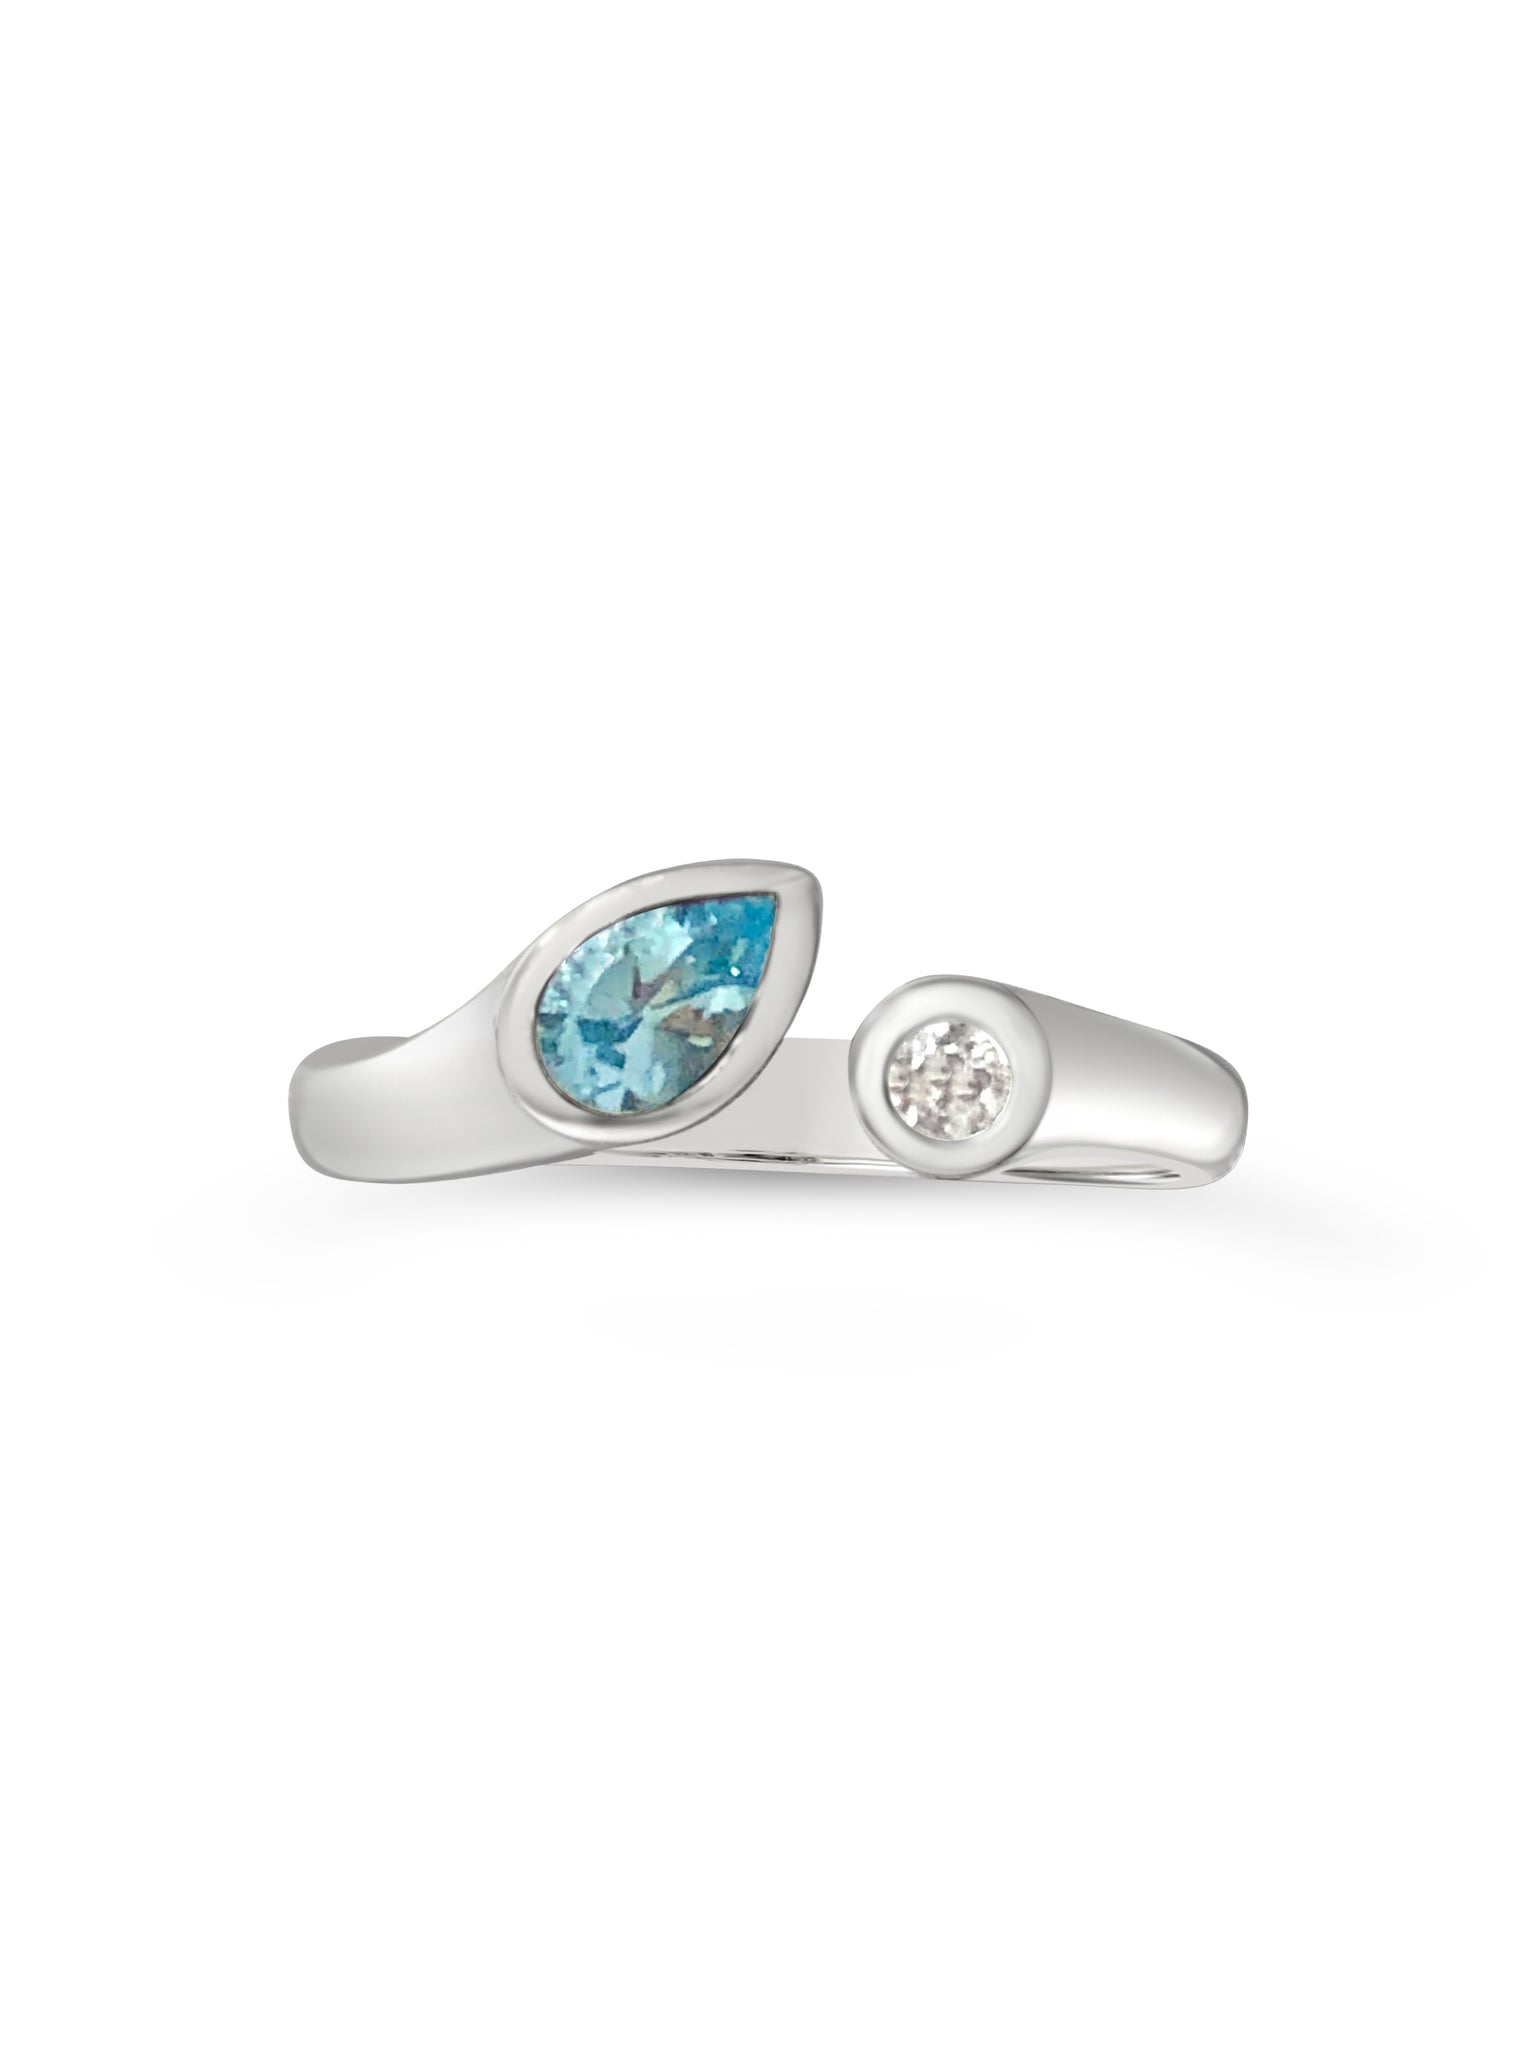 blue ice sterling silver ring with blue topaz